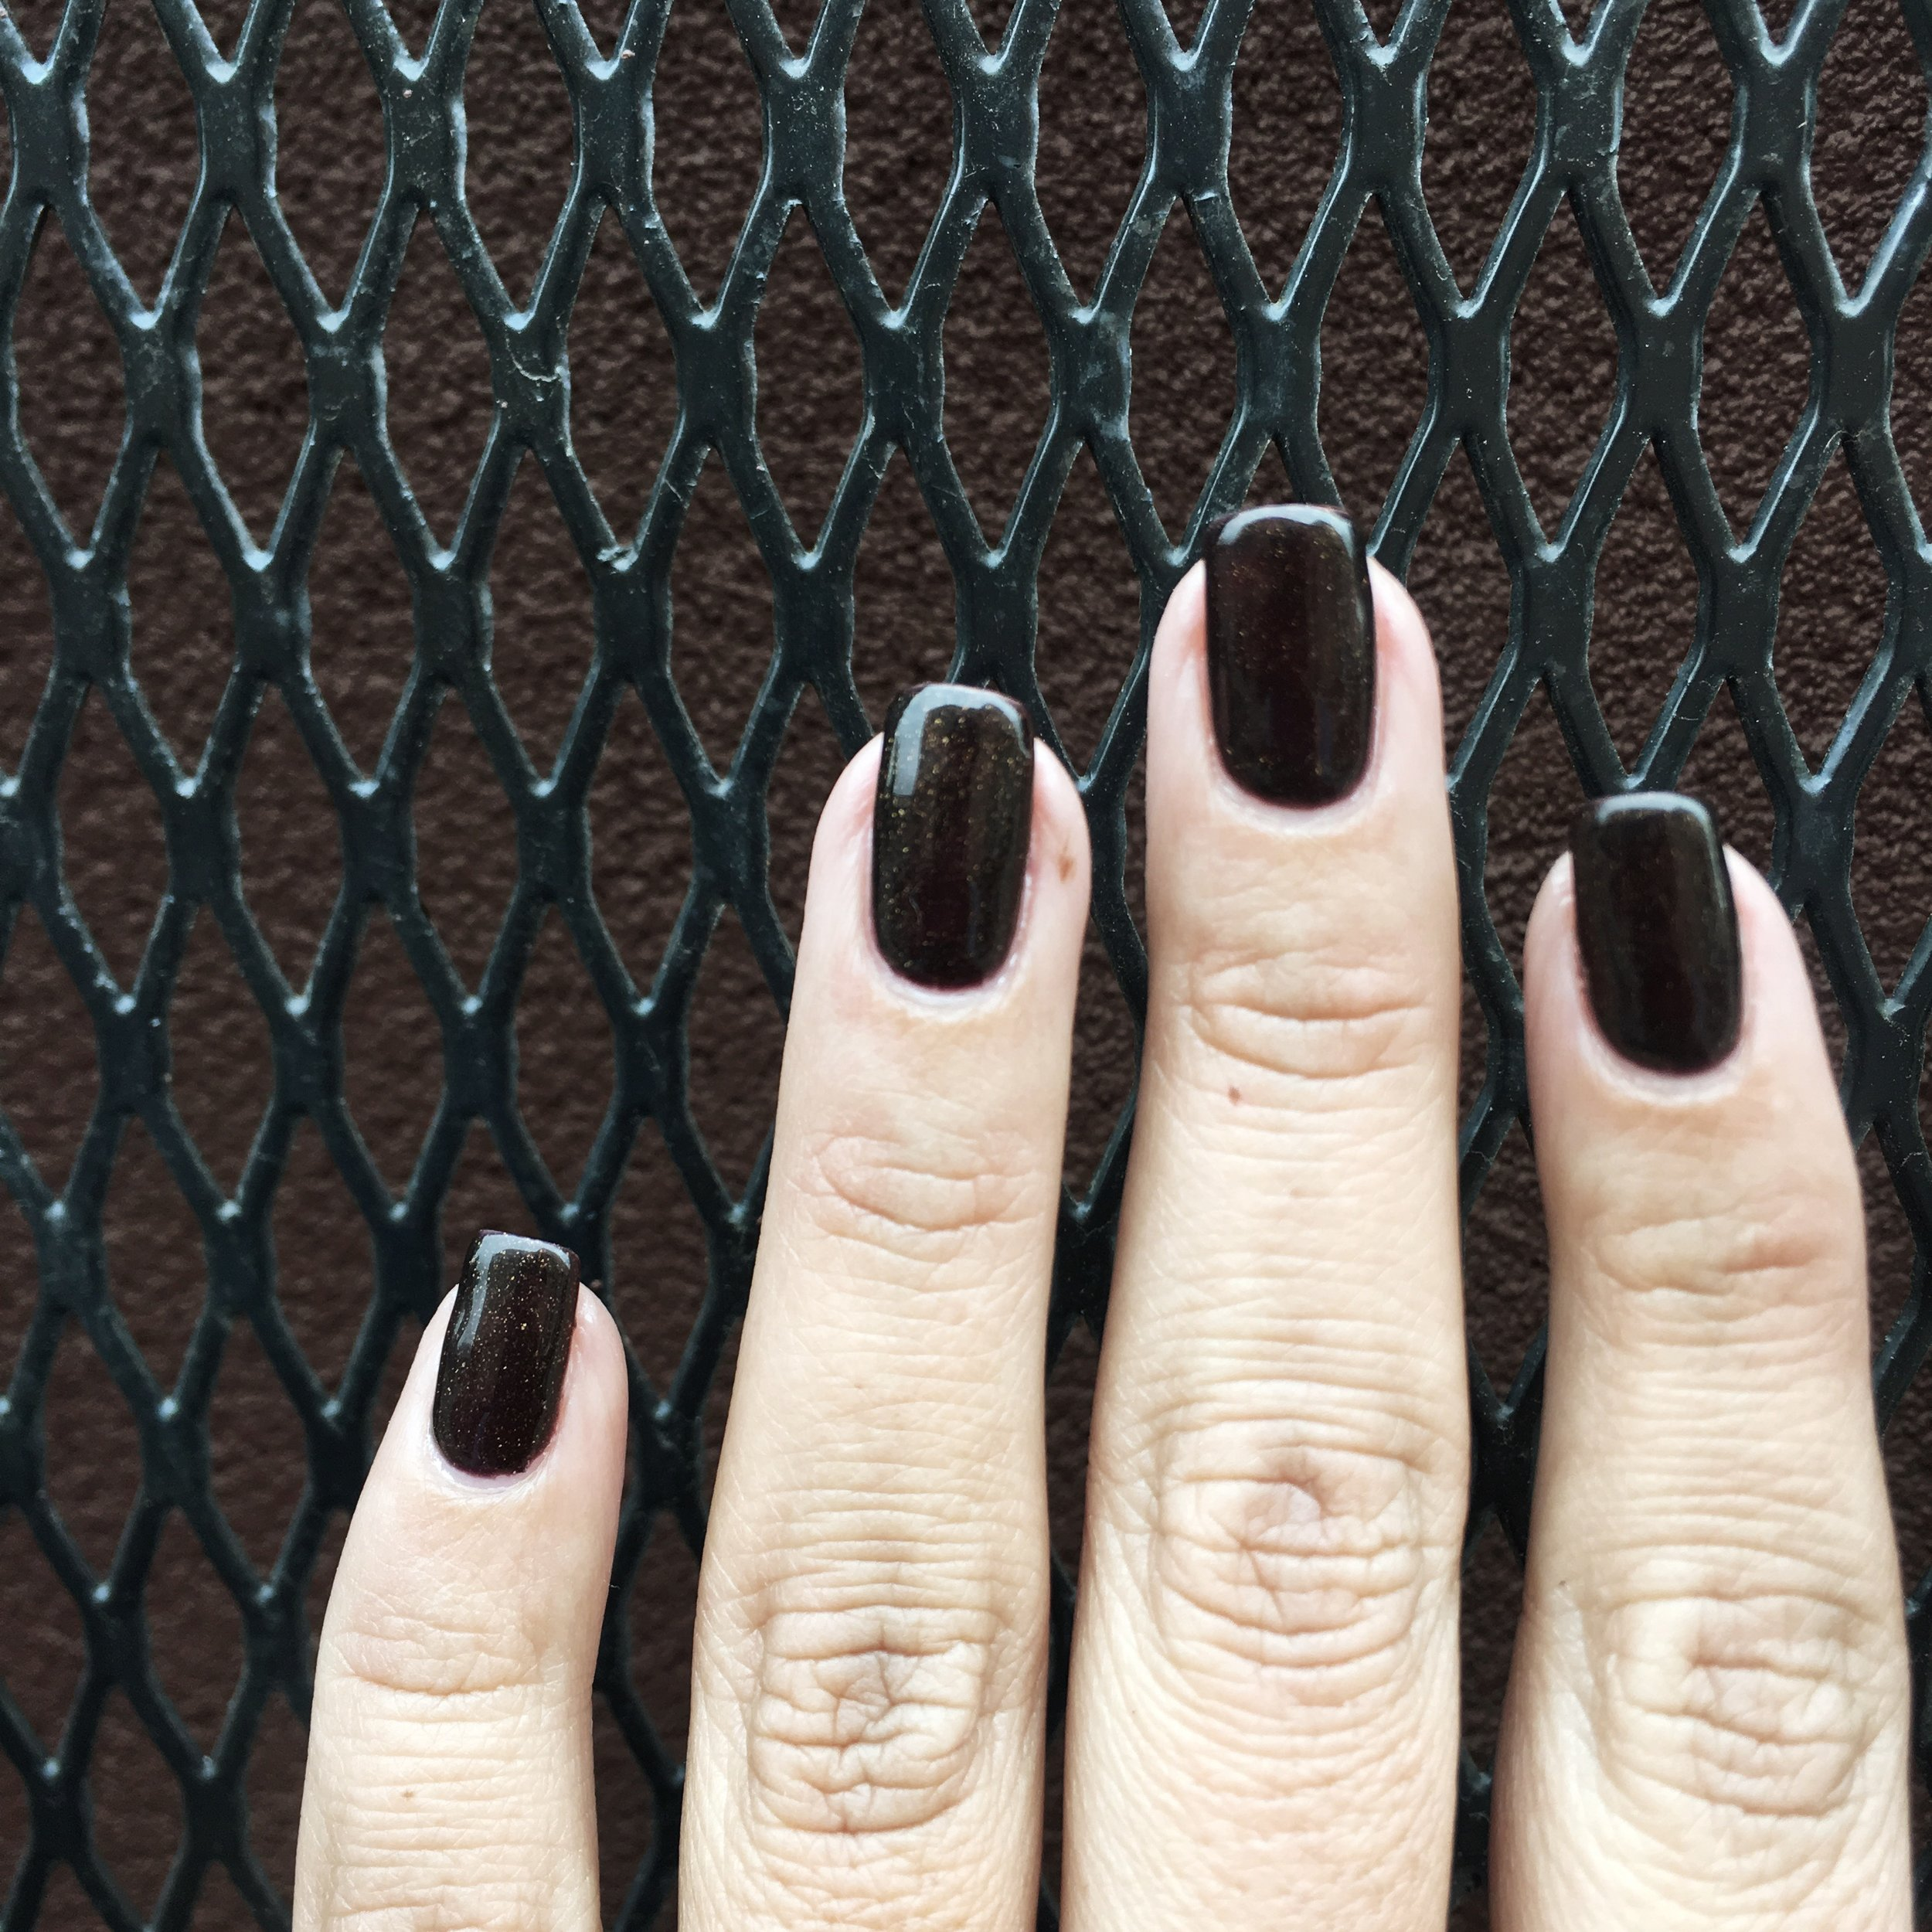 My nails are ready for fall with a brown shellac manicure